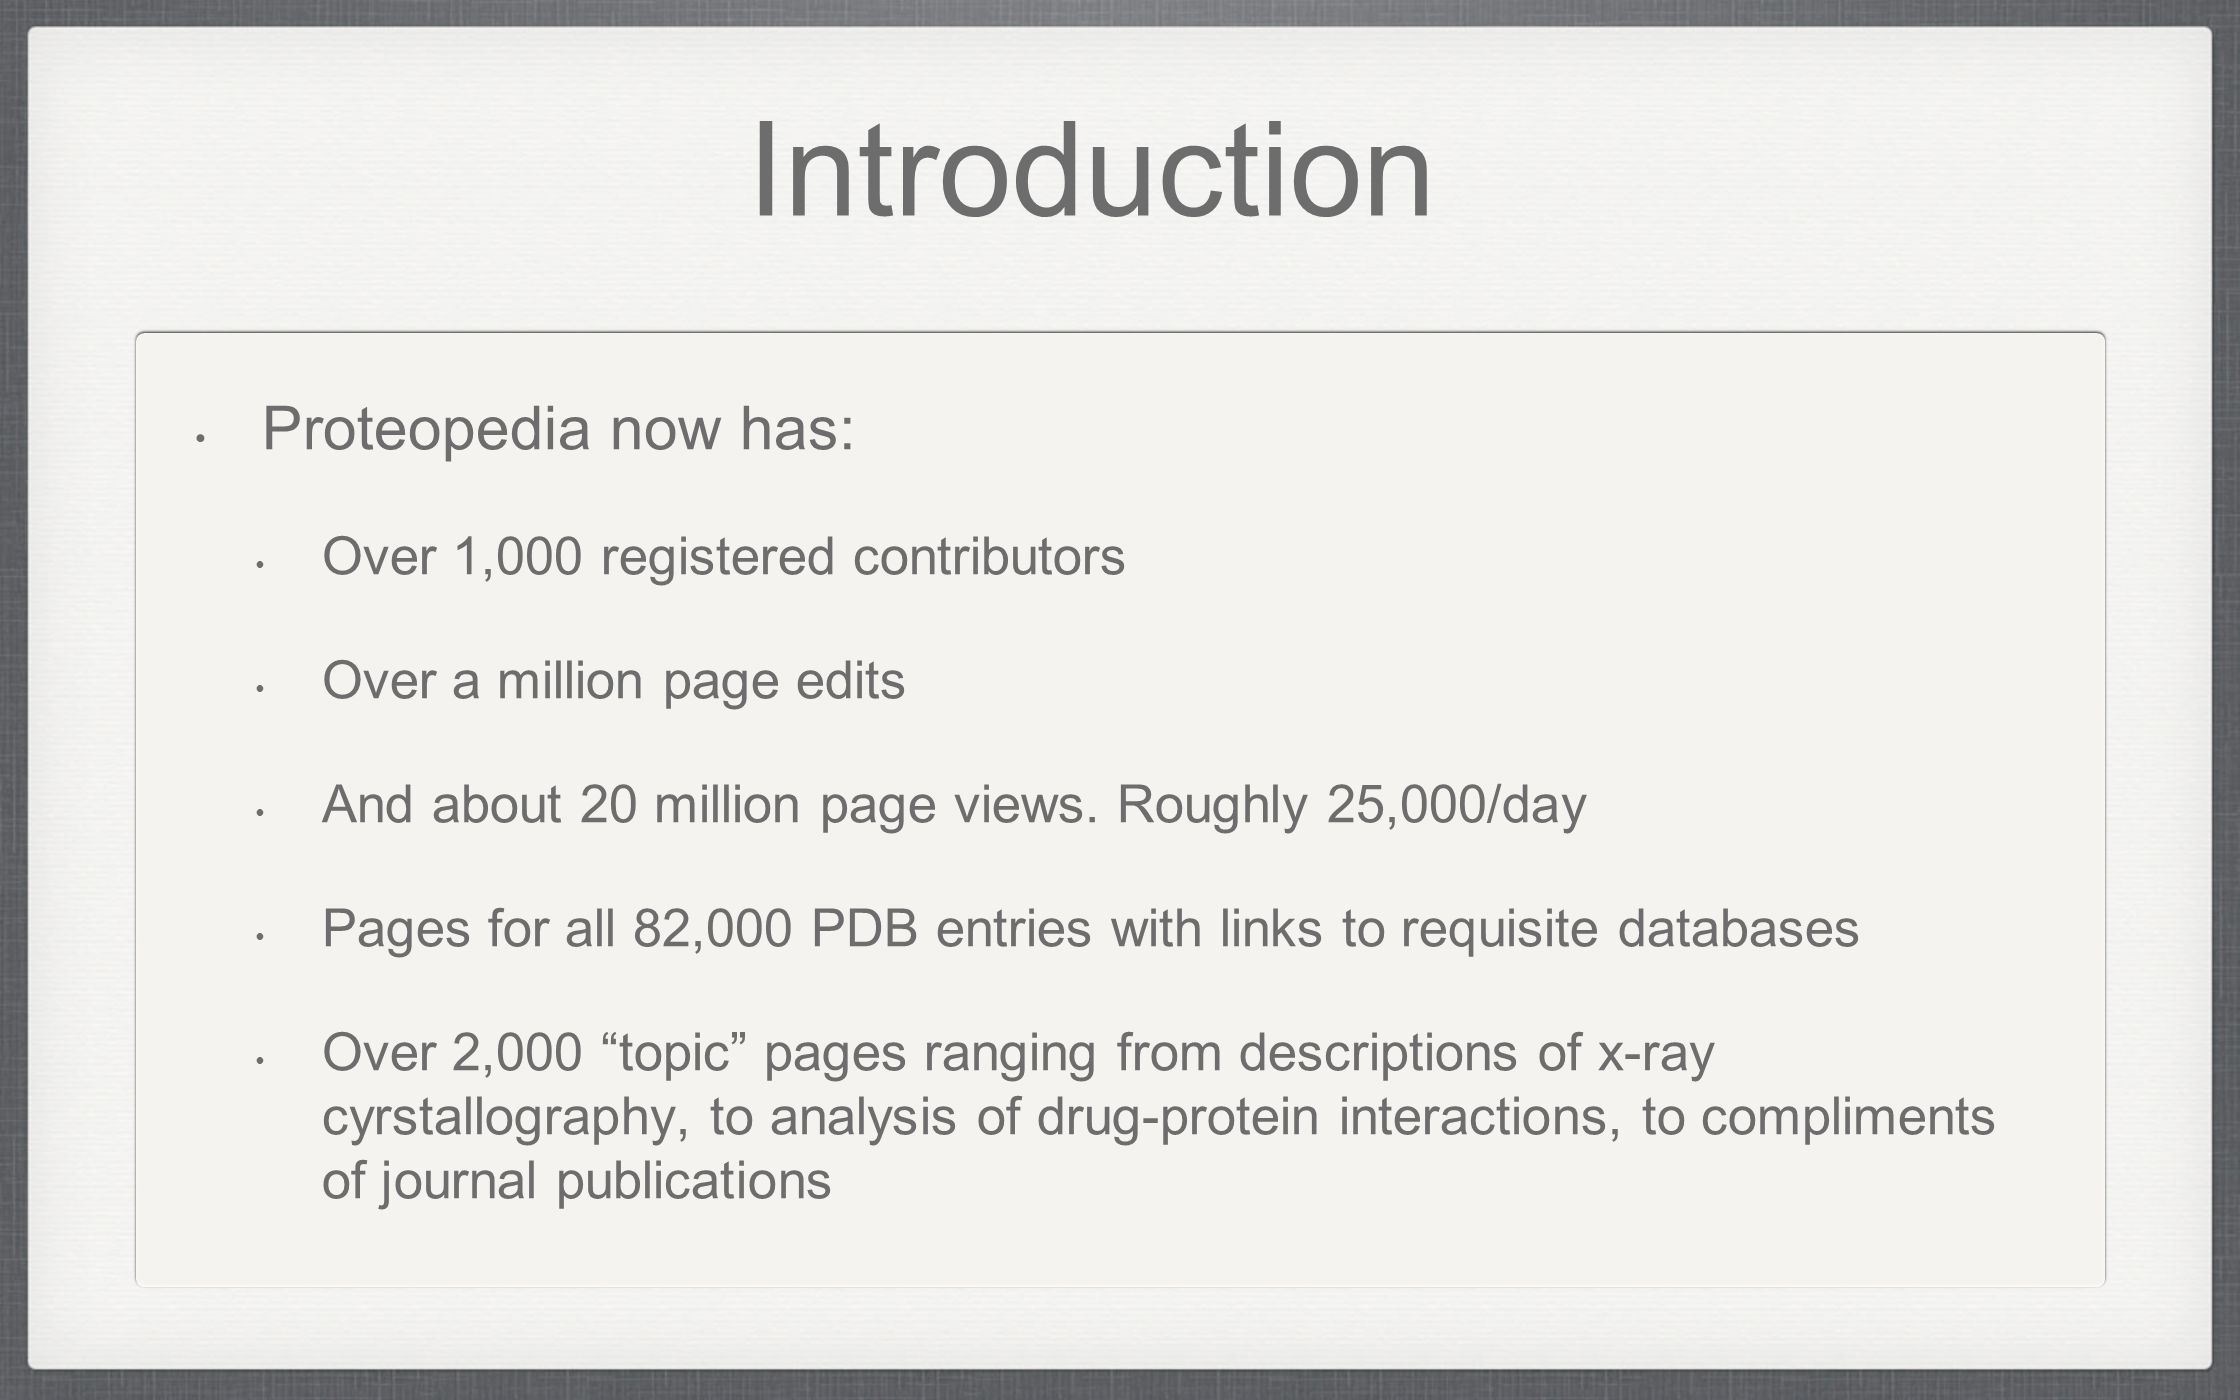 Proteopedia now has: Over 1,000 registered contributors Over a million page edits And about 20 million page views. Roughly 25,000/day Pages for all 82